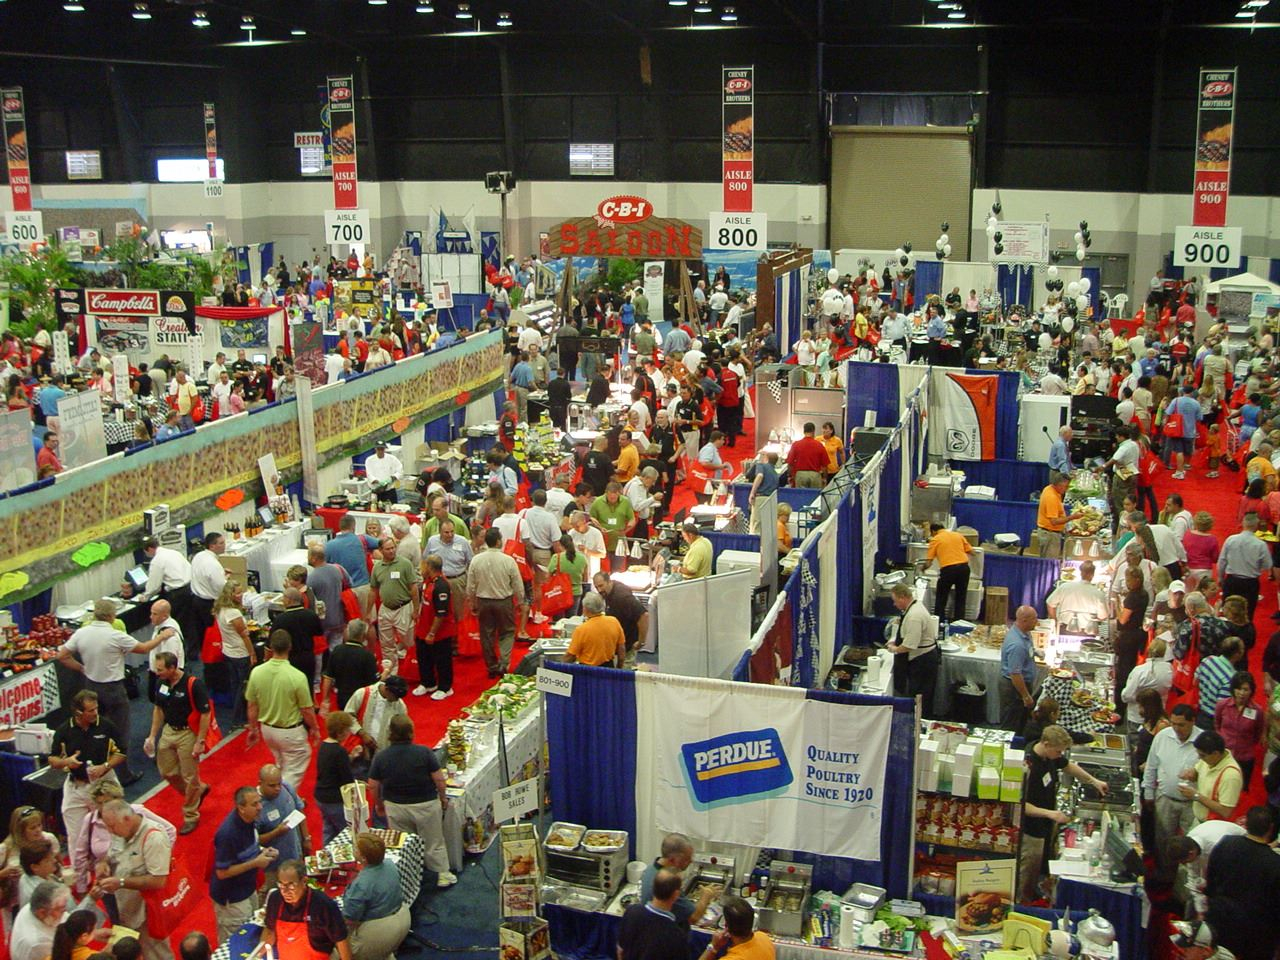 Rent The Facilities At The Expo Center At The South Florida In Events South Florida Fair Grounds